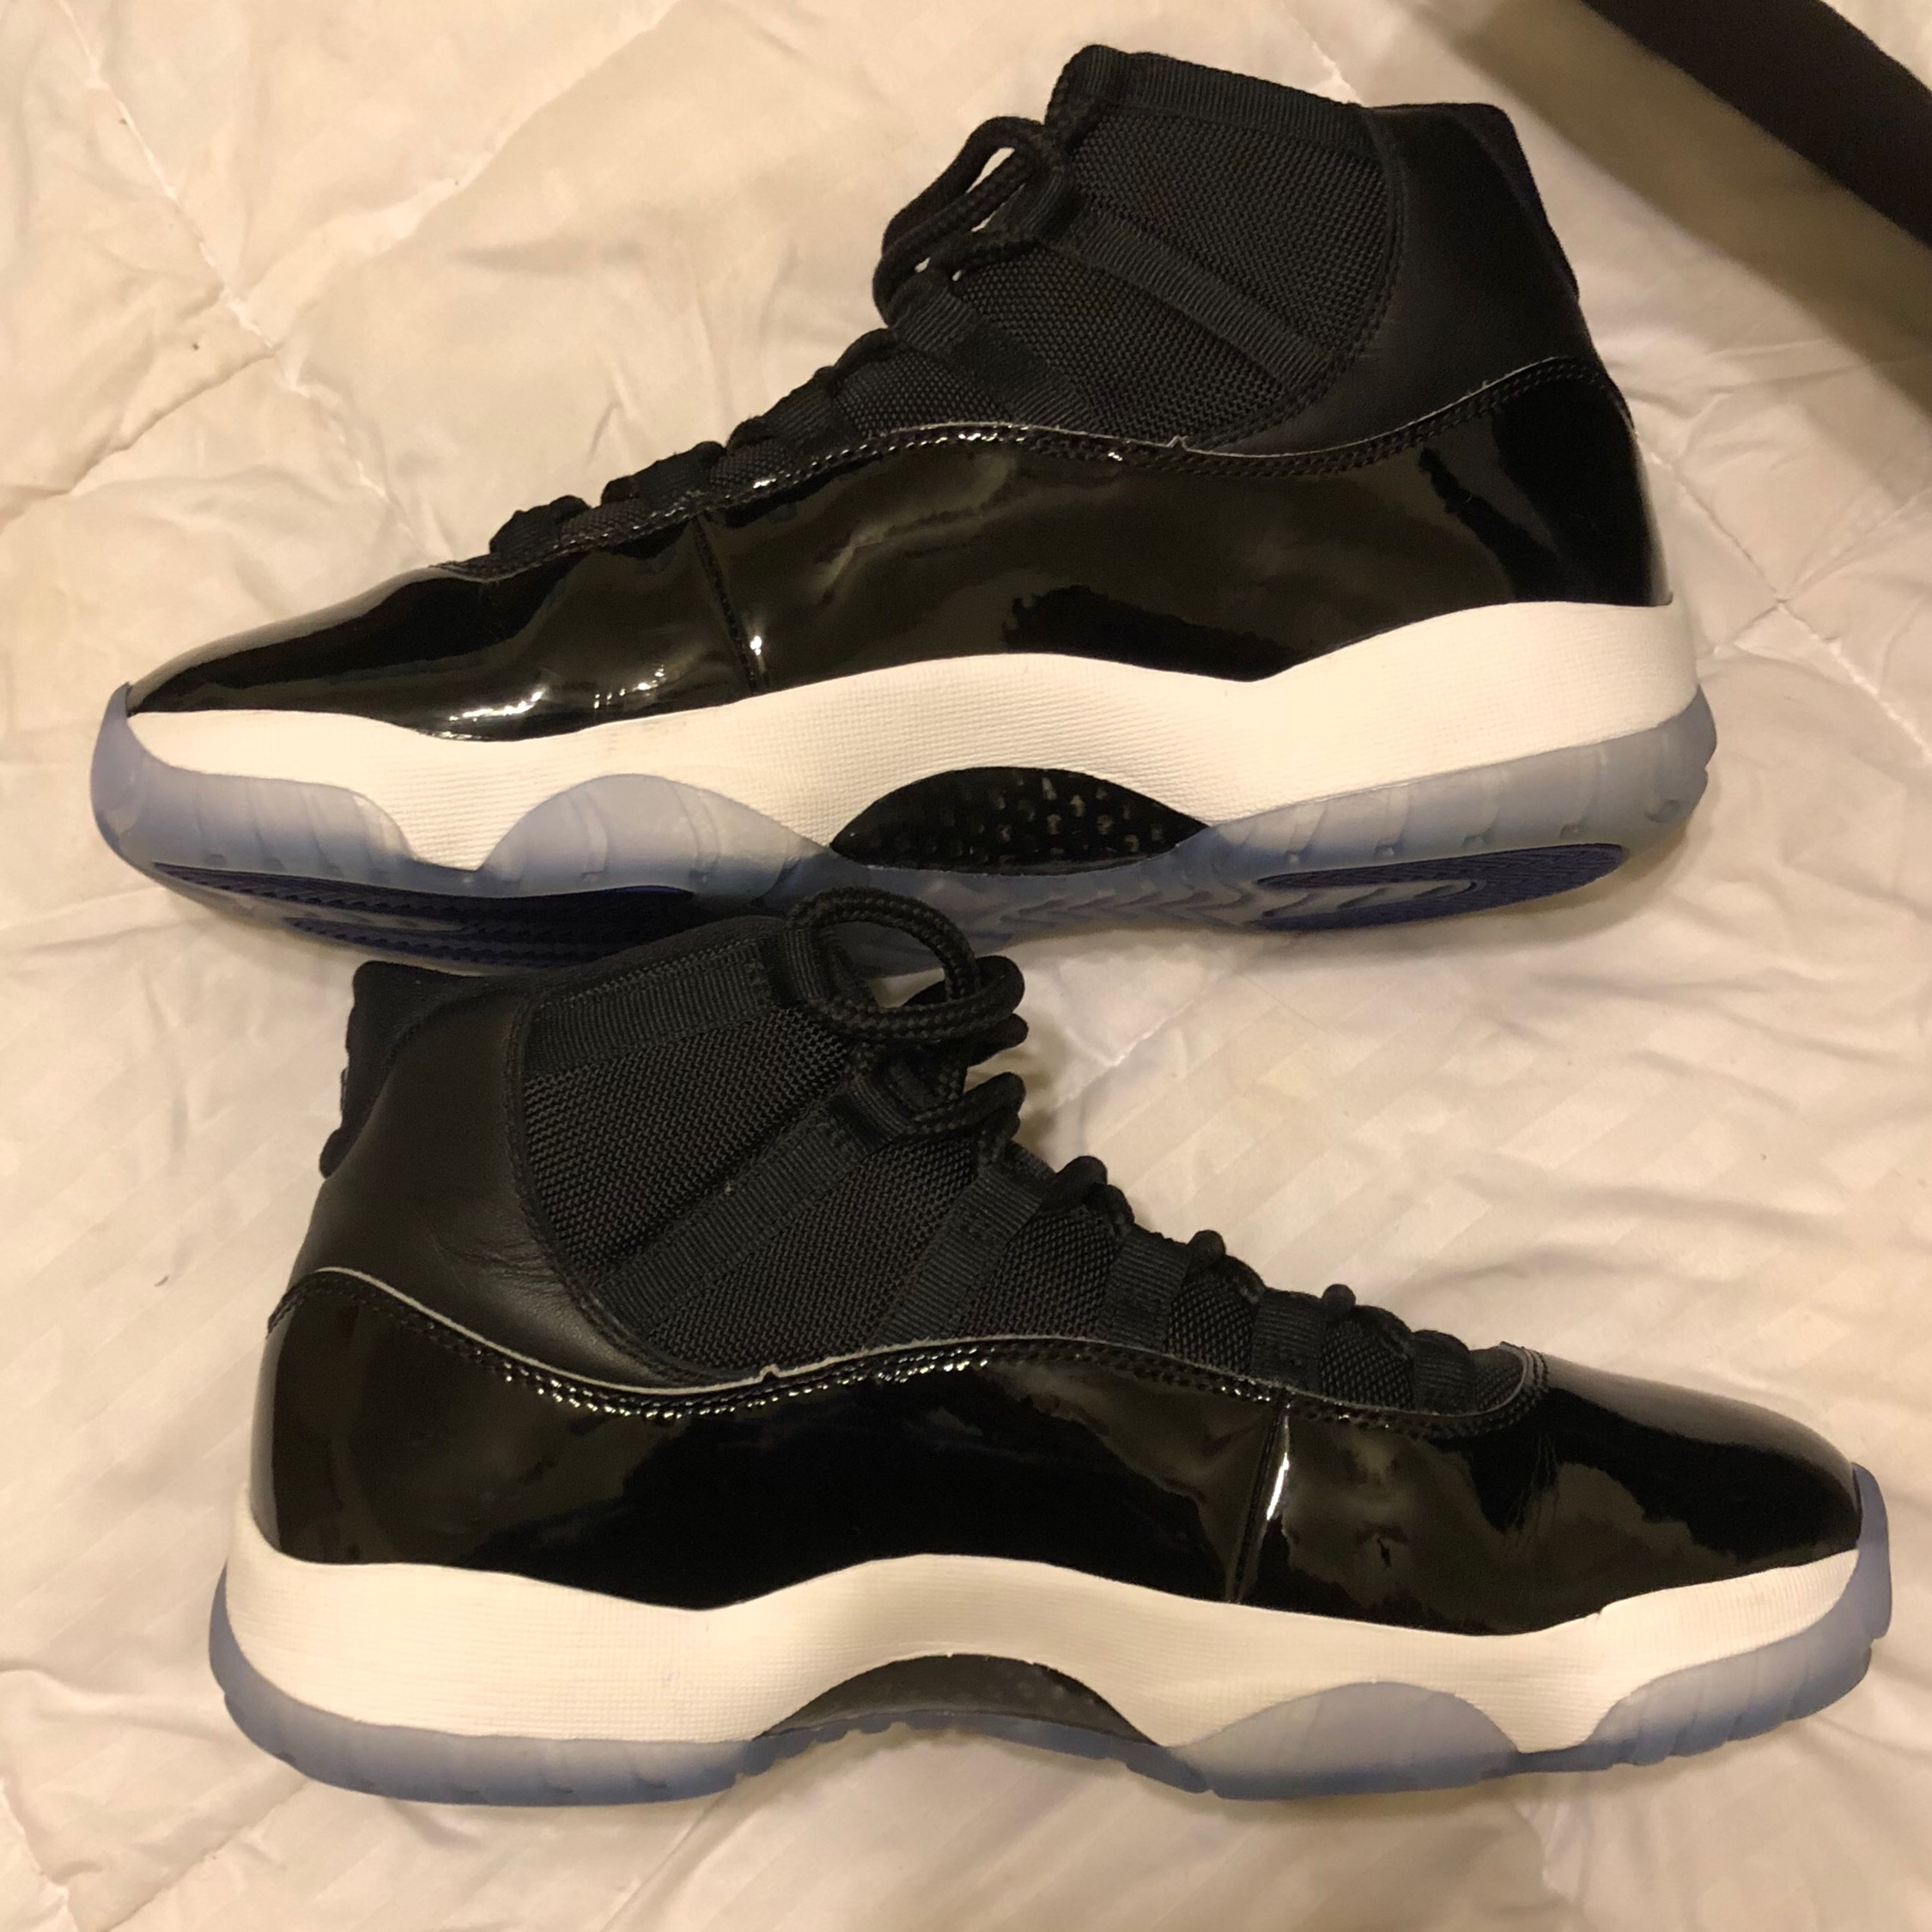 Jordan 11 Space Jams Size 10.5 Clothing, Shoes & Accessories